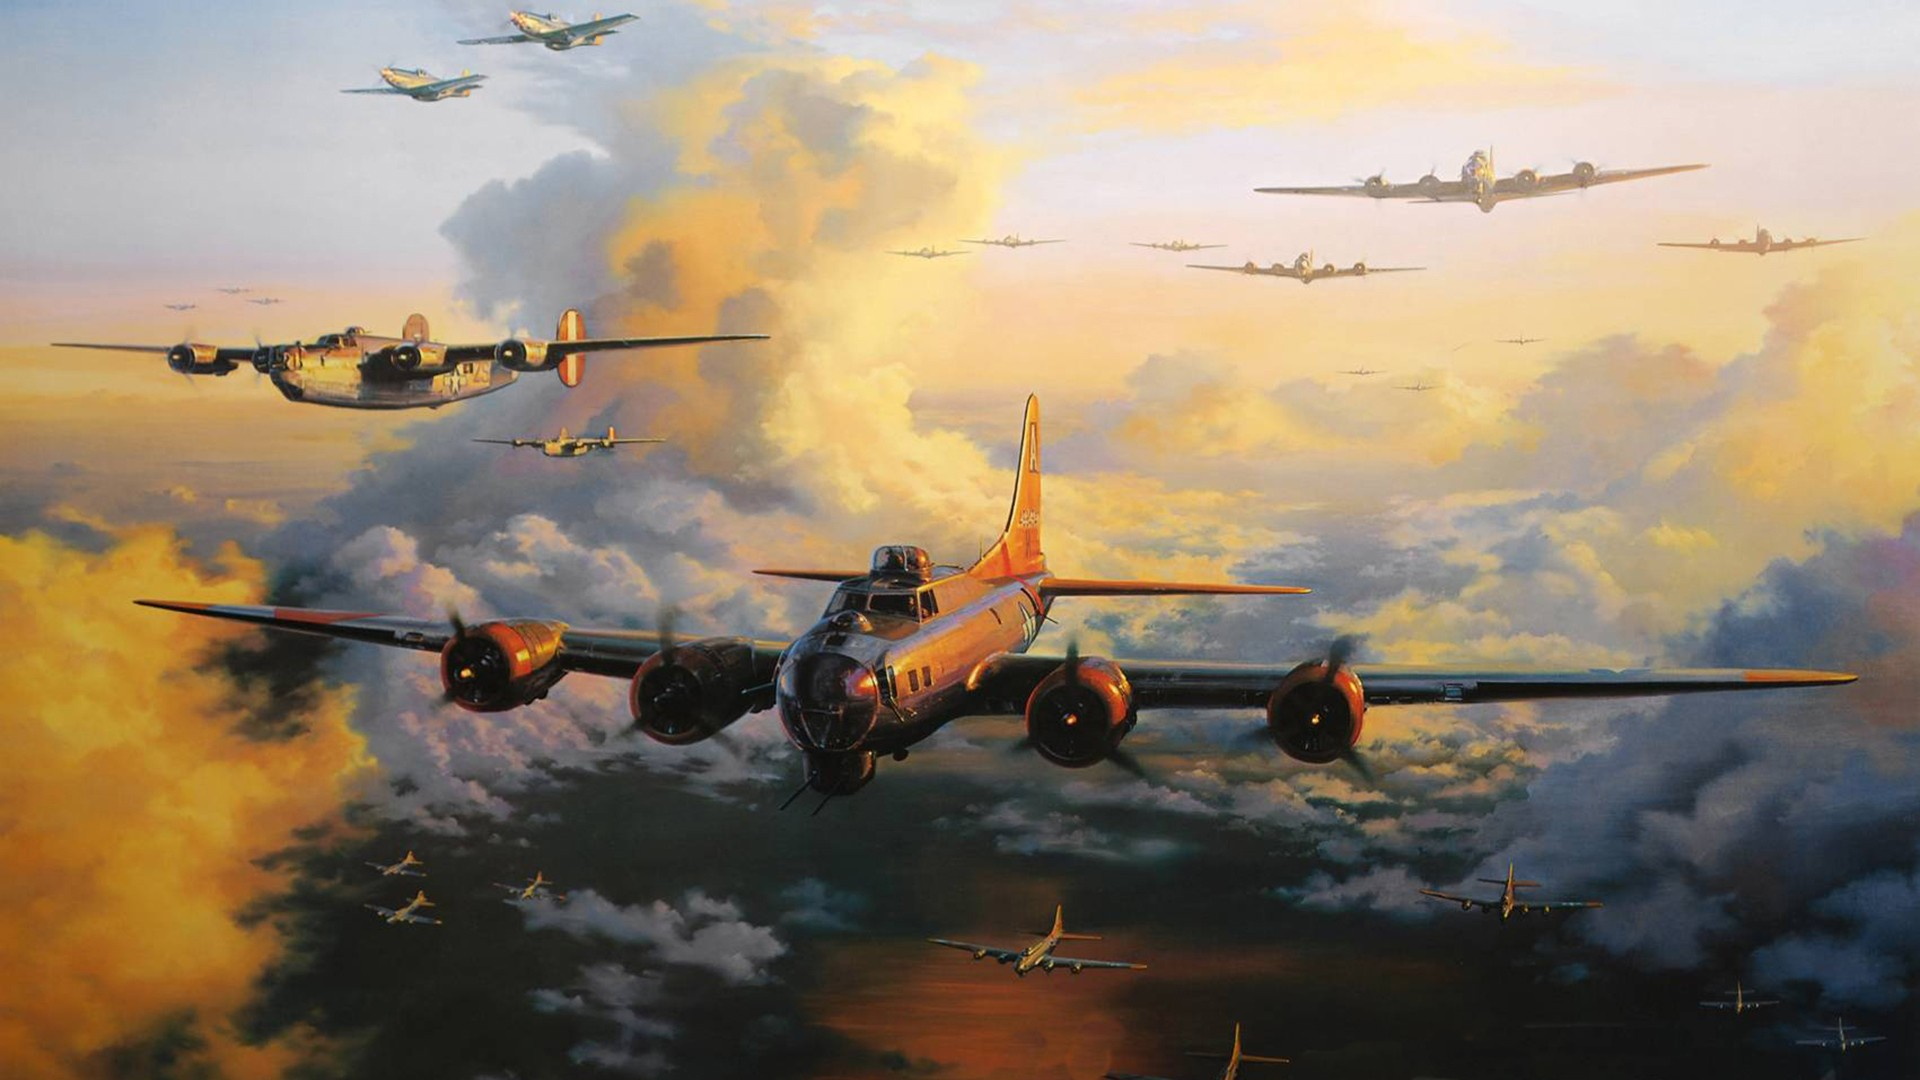 33] Boeing B 17 Flying Fortress Wallpapers on WallpaperSafari 1920x1080